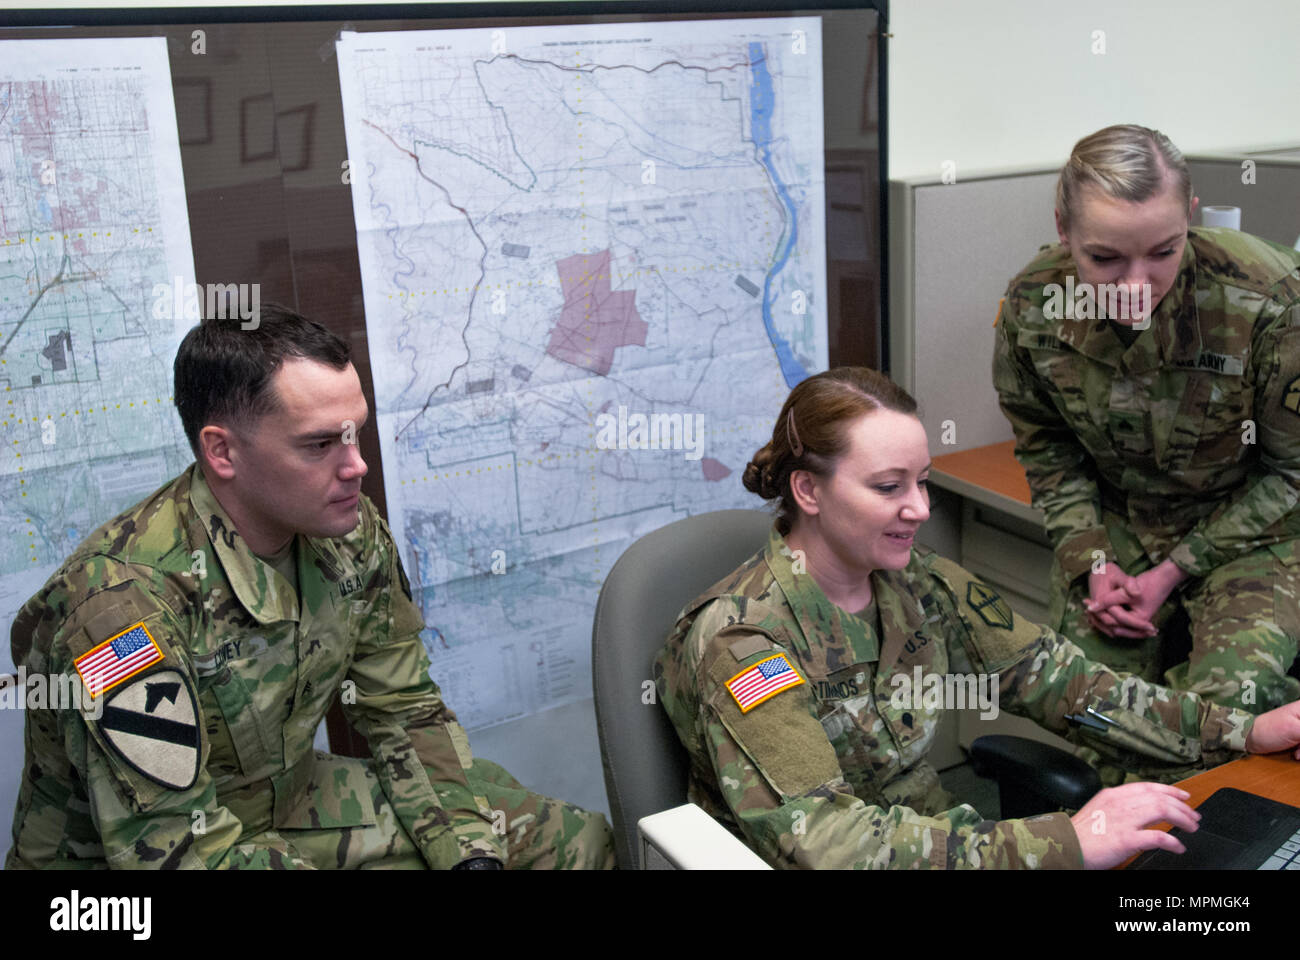 From left: Sgt. Morgan T. Wilken, Spc. Tara M. McTimmonds, Sgt. Noel A. Covey, work together to produce a Combined Obstacle Overlay, Joint Base Lewis-McChord, Wash. February 12, 2017. Geospatial engineers produce the maps that will support the commander's next mission, and are a vital component of the Army, Army Reserve, and Total Force (U.S. Army Reserve photo by Spc. Sean Harding/Released). - Stock Image